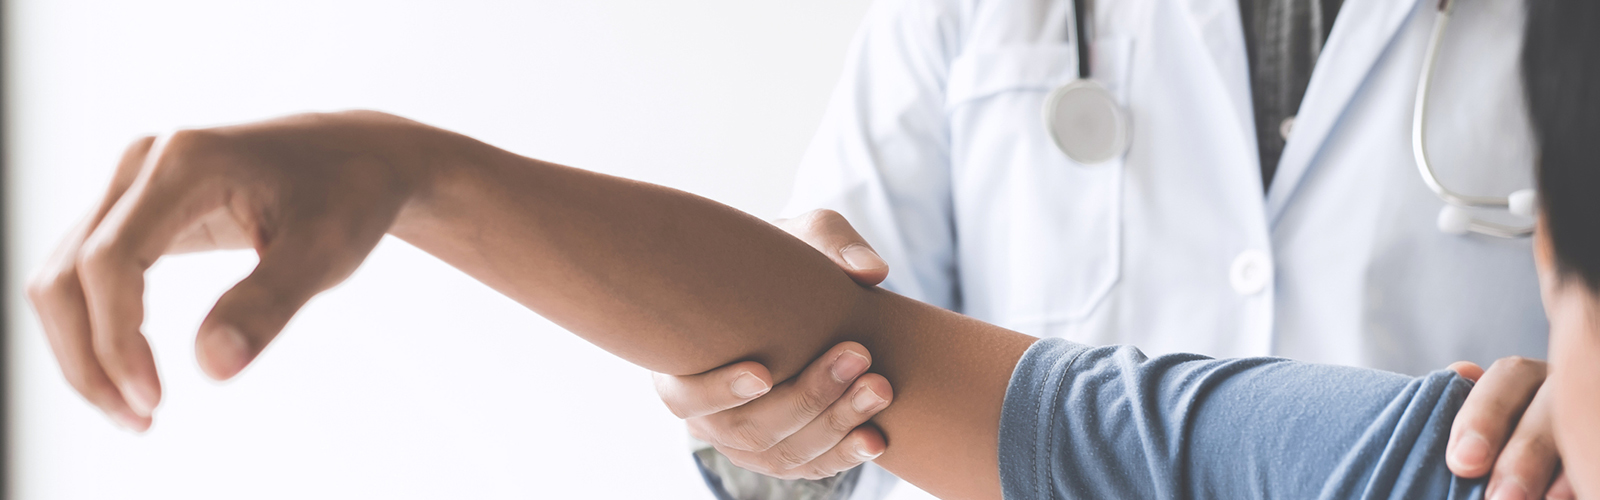 Doctor checking patient's elbow